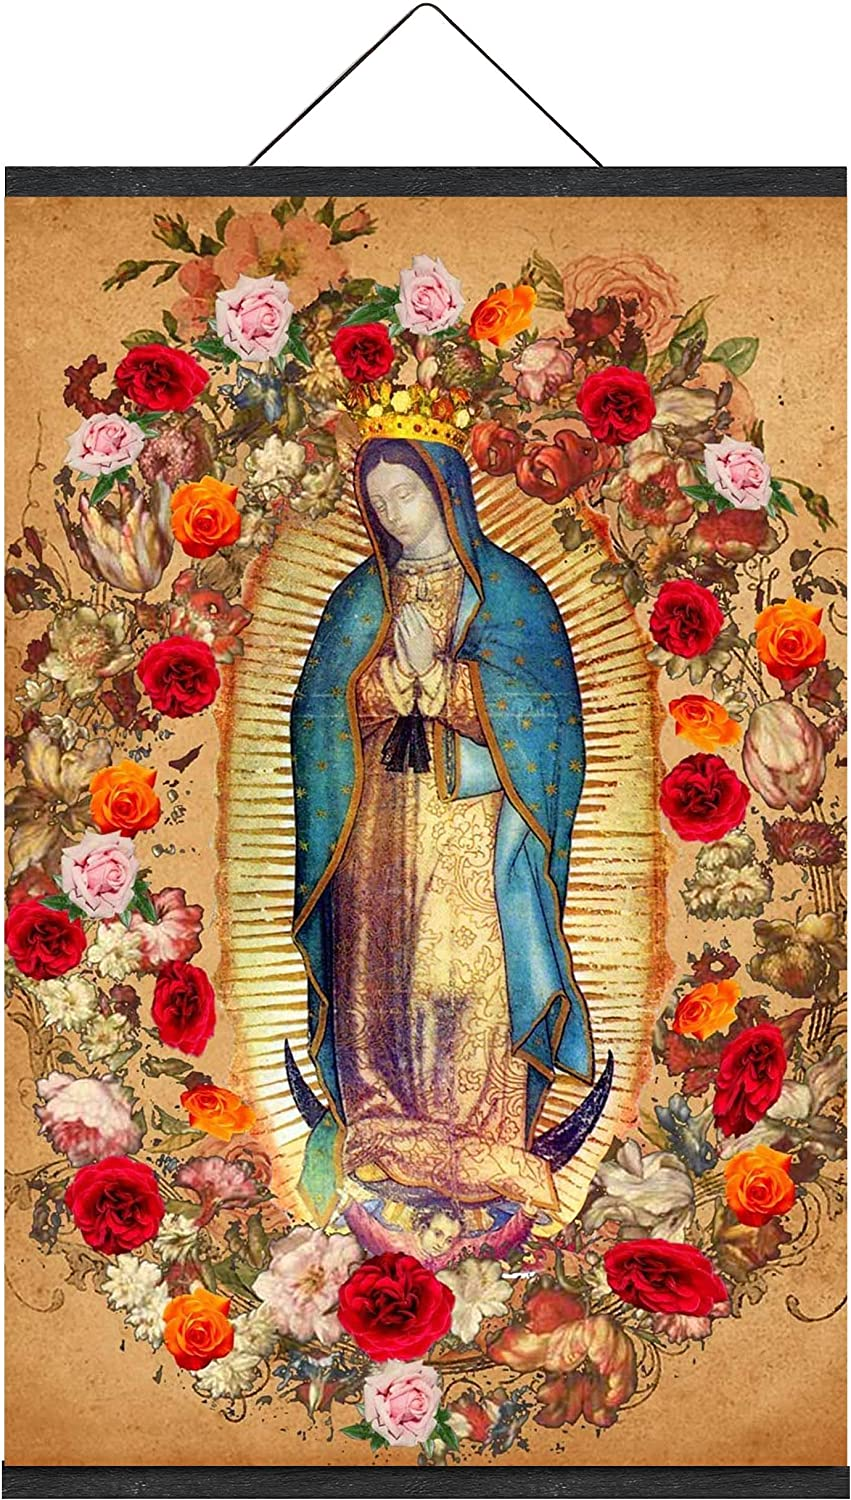 Virgin Mary Our Lady of Guadalupe Mexican la Virgen de Art Print Poster Picture Religious Image Holy Painting Catholic Christian Poster Magnetic Hanging Frame Changeable & Resuable (10 x 15 Inch)